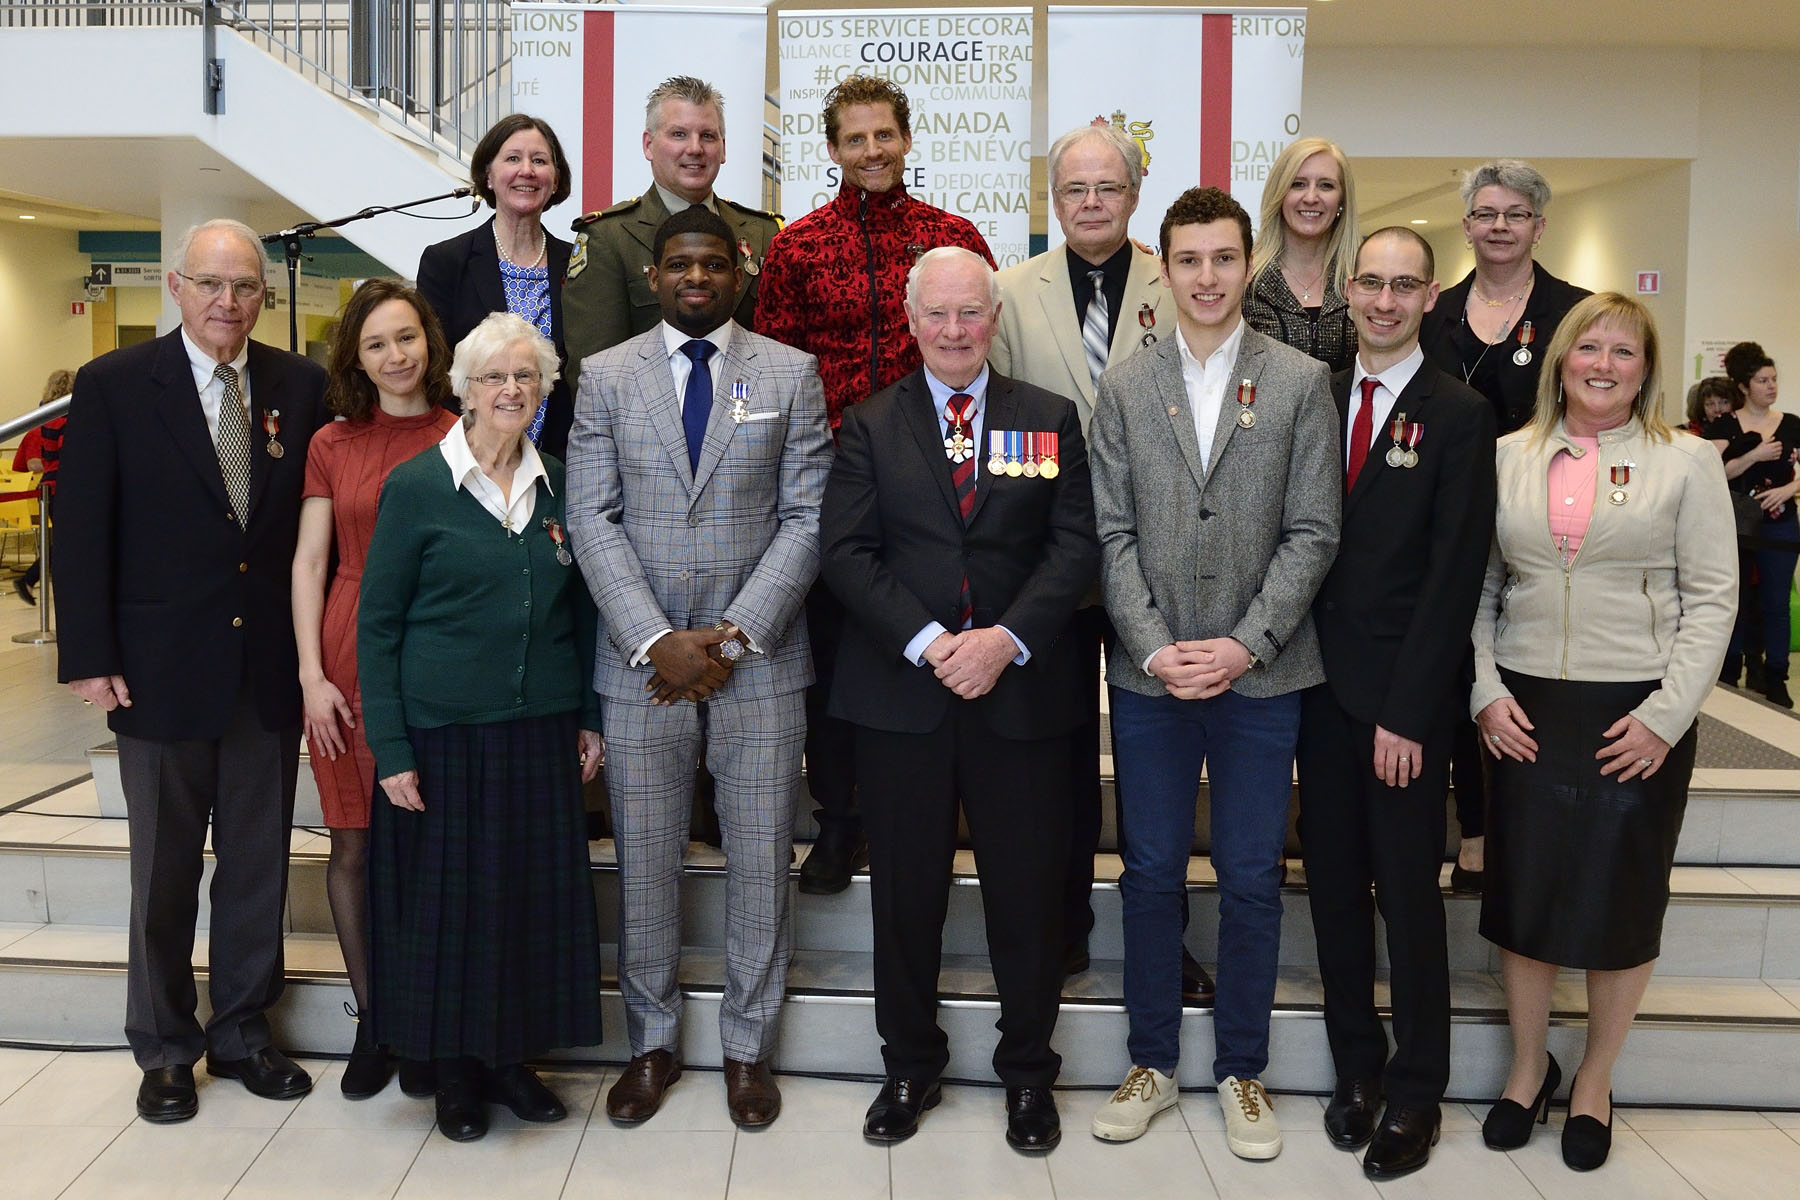 His Excellency the Right Honourable David Johnston, Governor General of Canada, presented a Meritorious Service Decoration (Civil Division) to Mr. Pernell-Karl (P.K.) Subban and the Sovereign's Medal for Volunteers to 12 deserving individuals from the Montréal region.